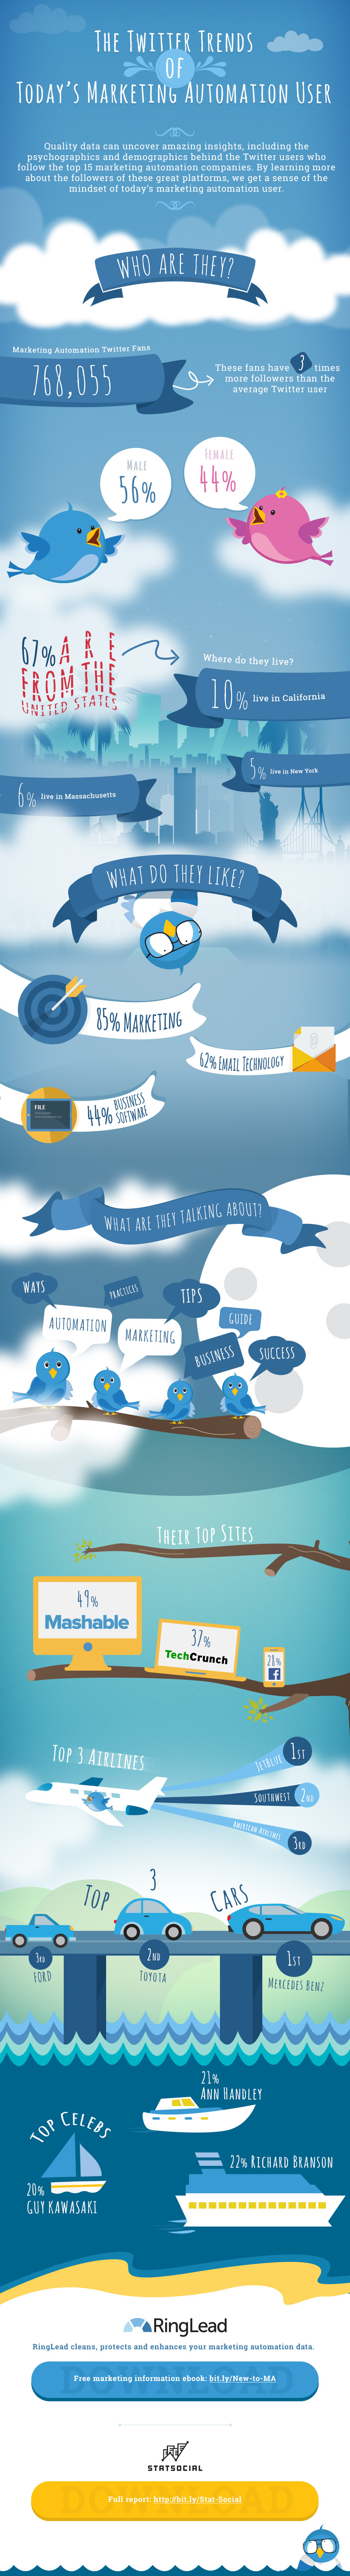 Infographic: The Twitter Trends of Today's Marketing Automation User #infographic